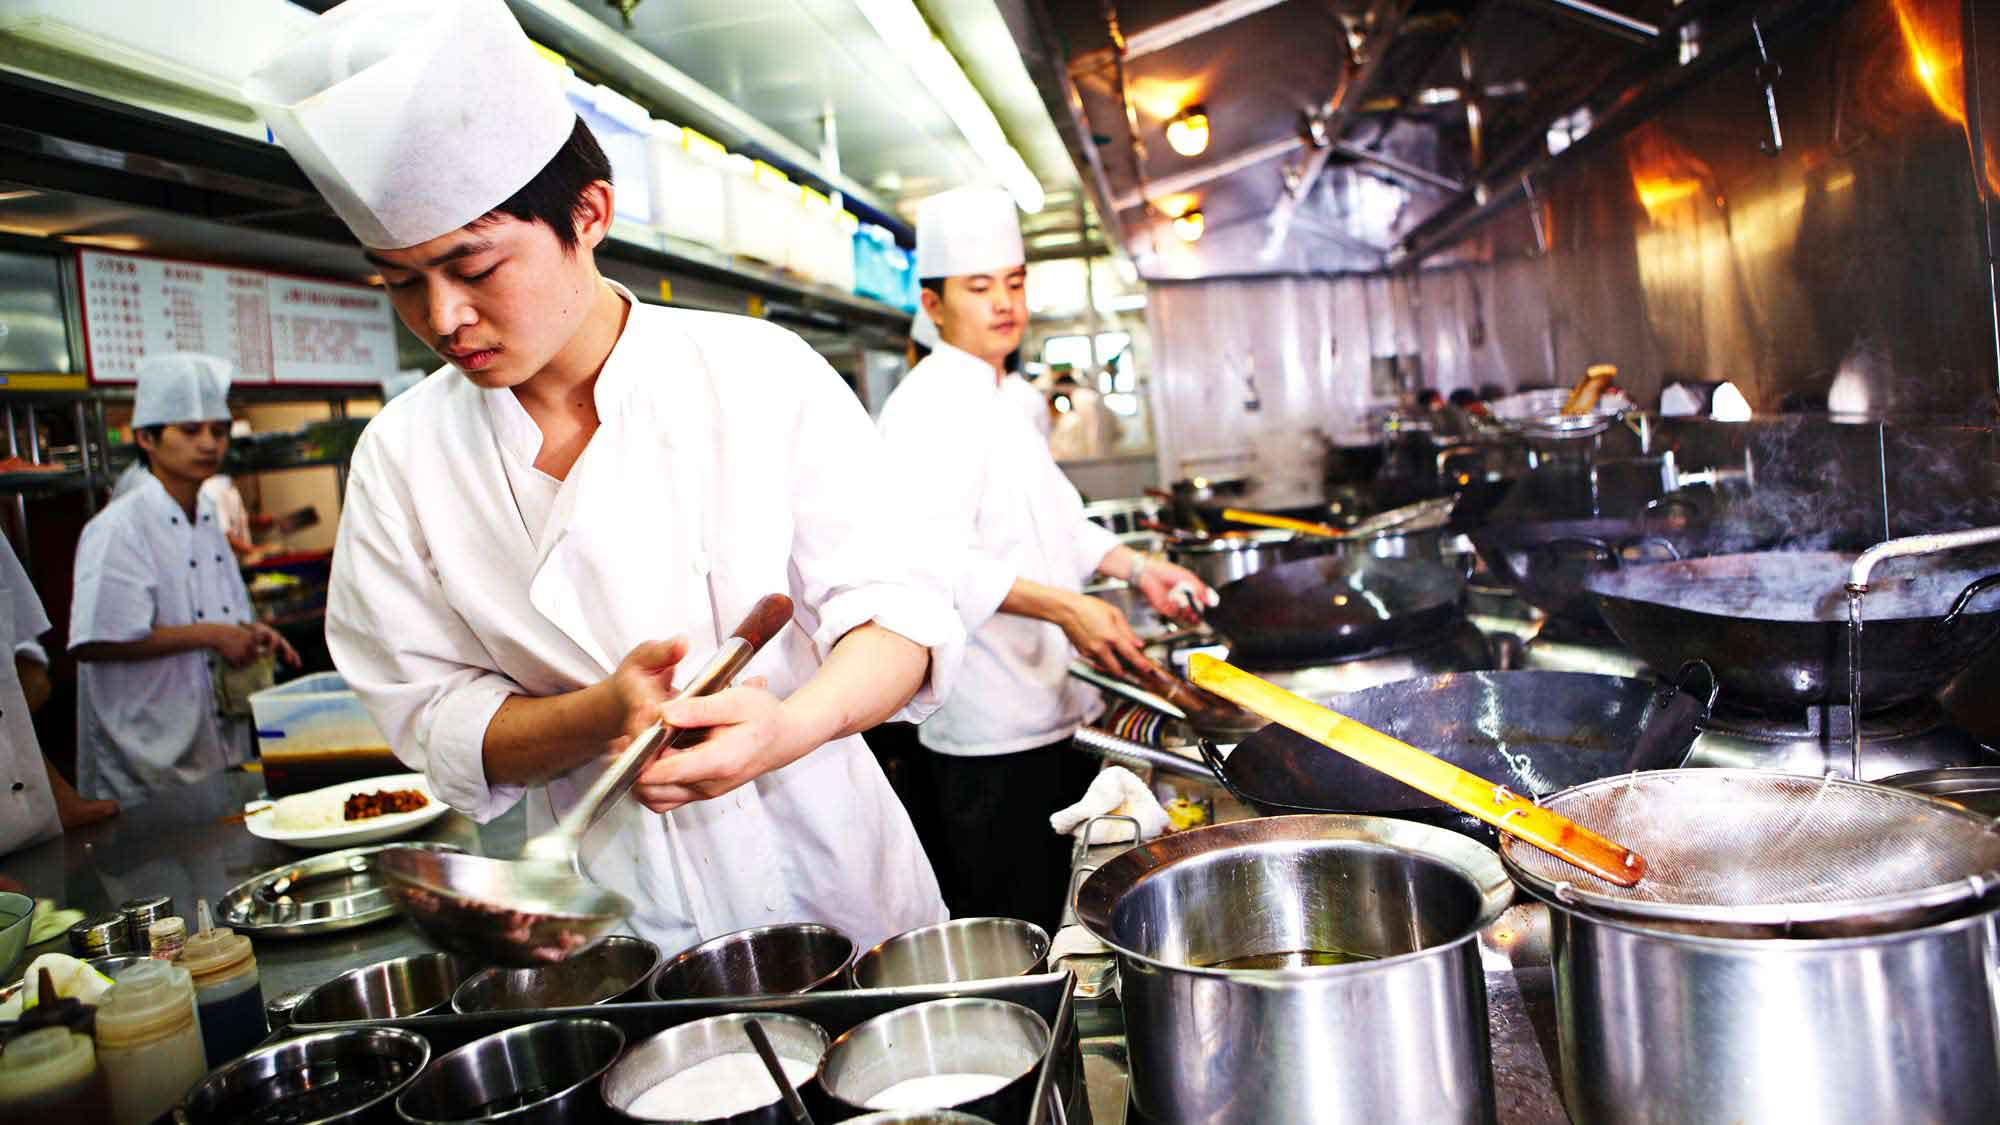 Chefs prepare meals using Unilever products